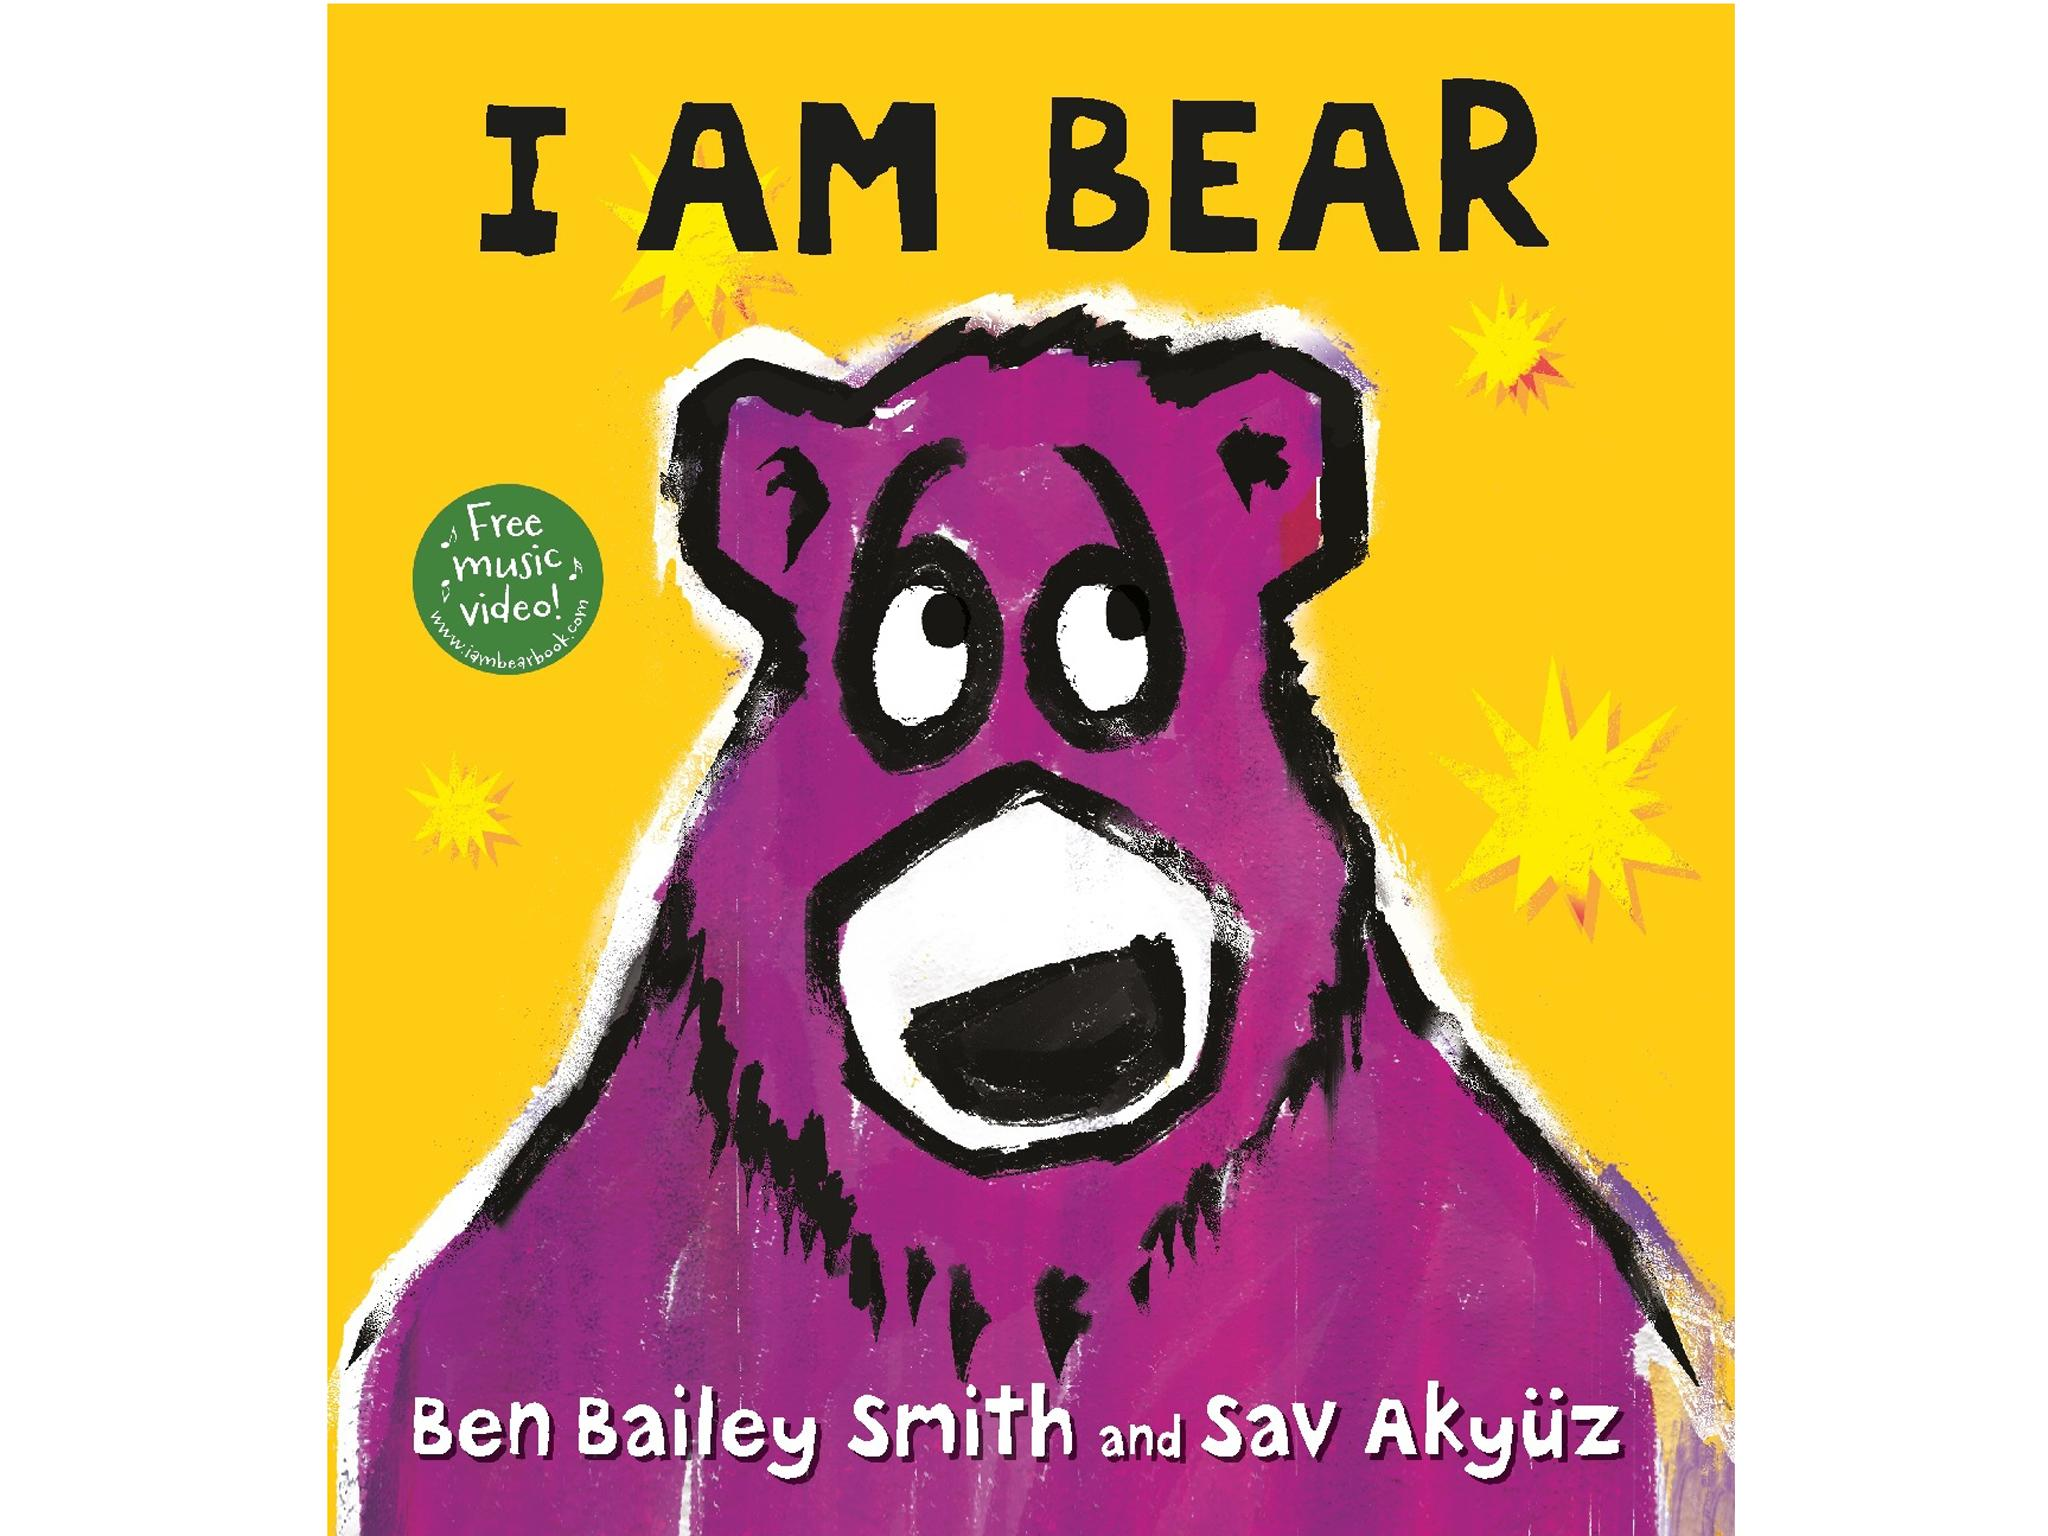 Brown Is A Rapper By Trade And It Shows In The Rhythm Of This Simple Irreverent Book About A Mischievous Purple Bear Theres An Online Version Set